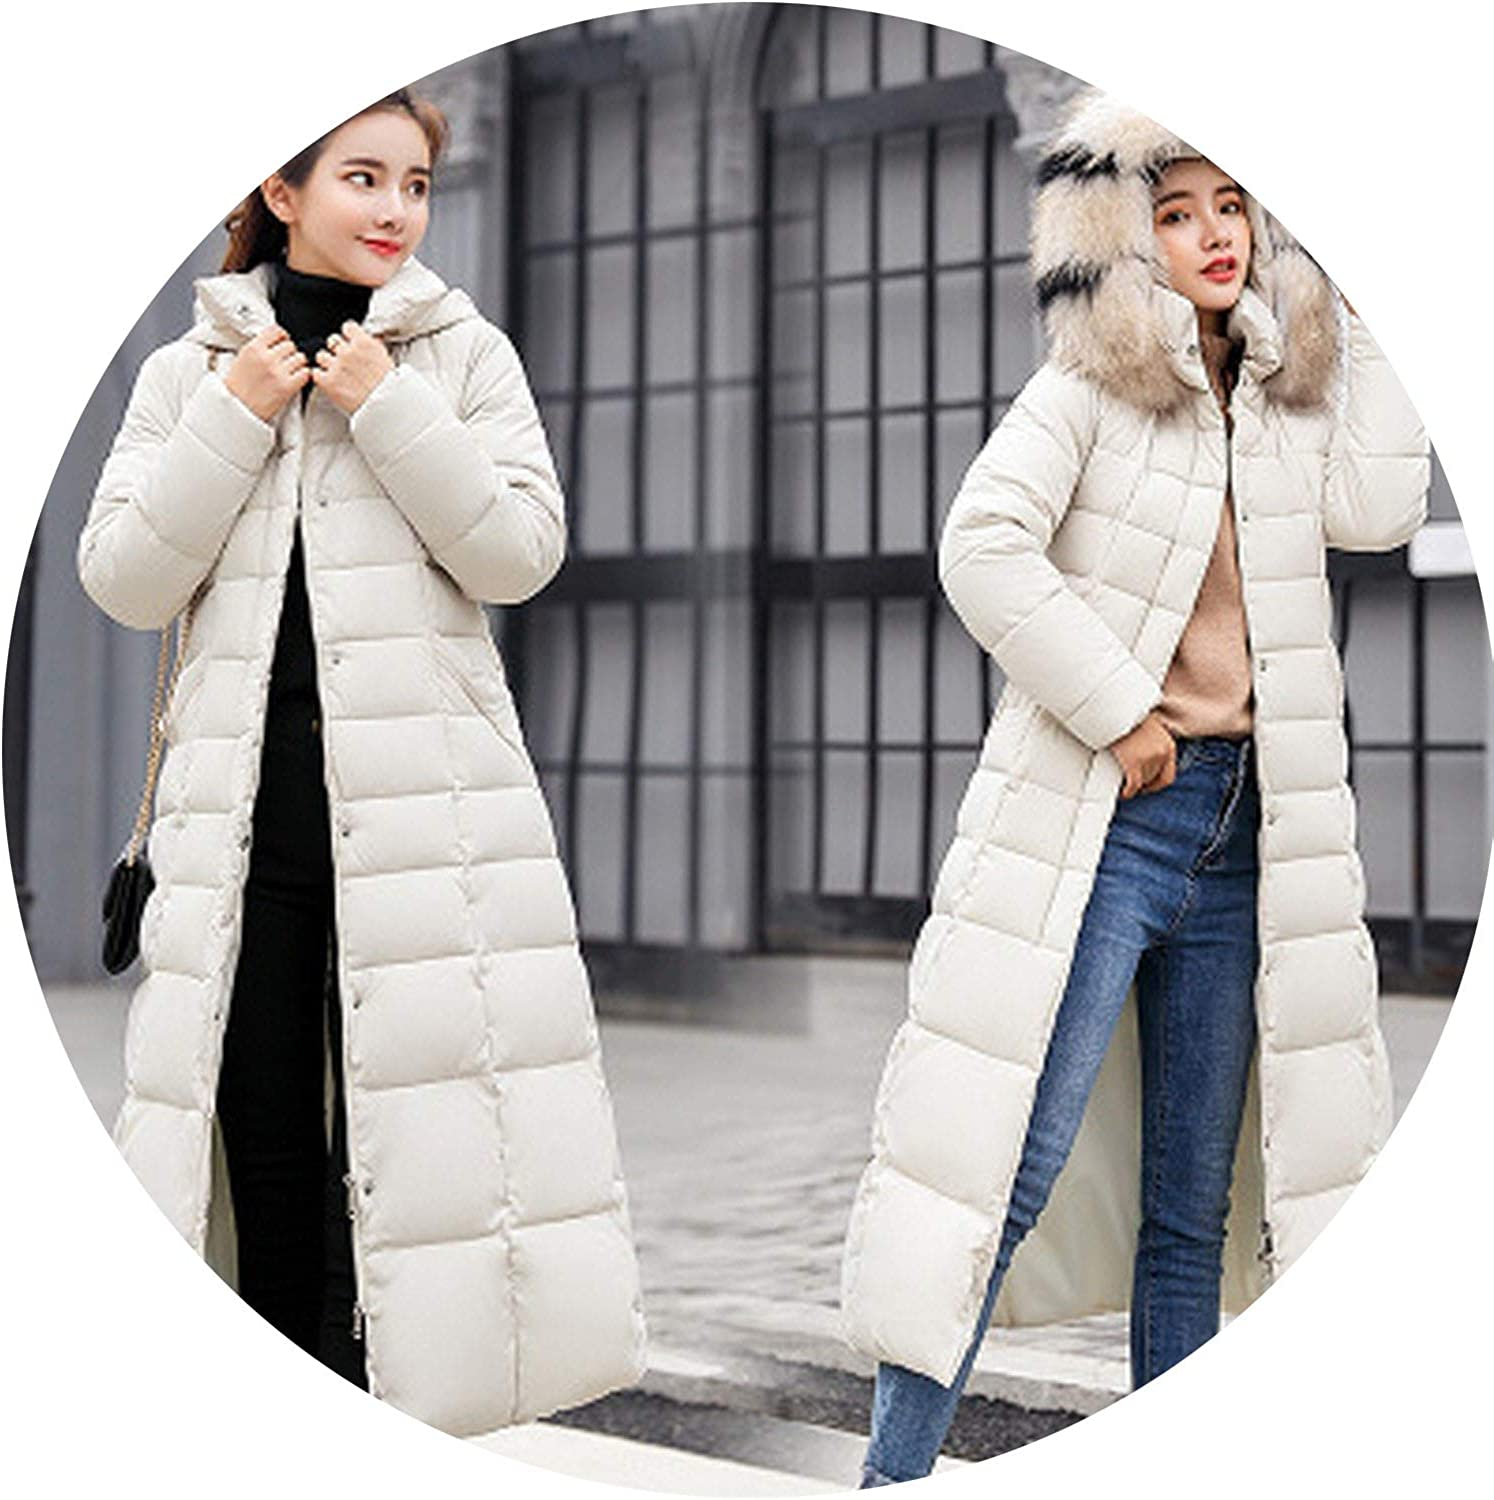 SurpriseShow Women Coats Winter Leisure Loose Size Fur Collar Hooded Keep Warm Down Cotton Clothing Coat